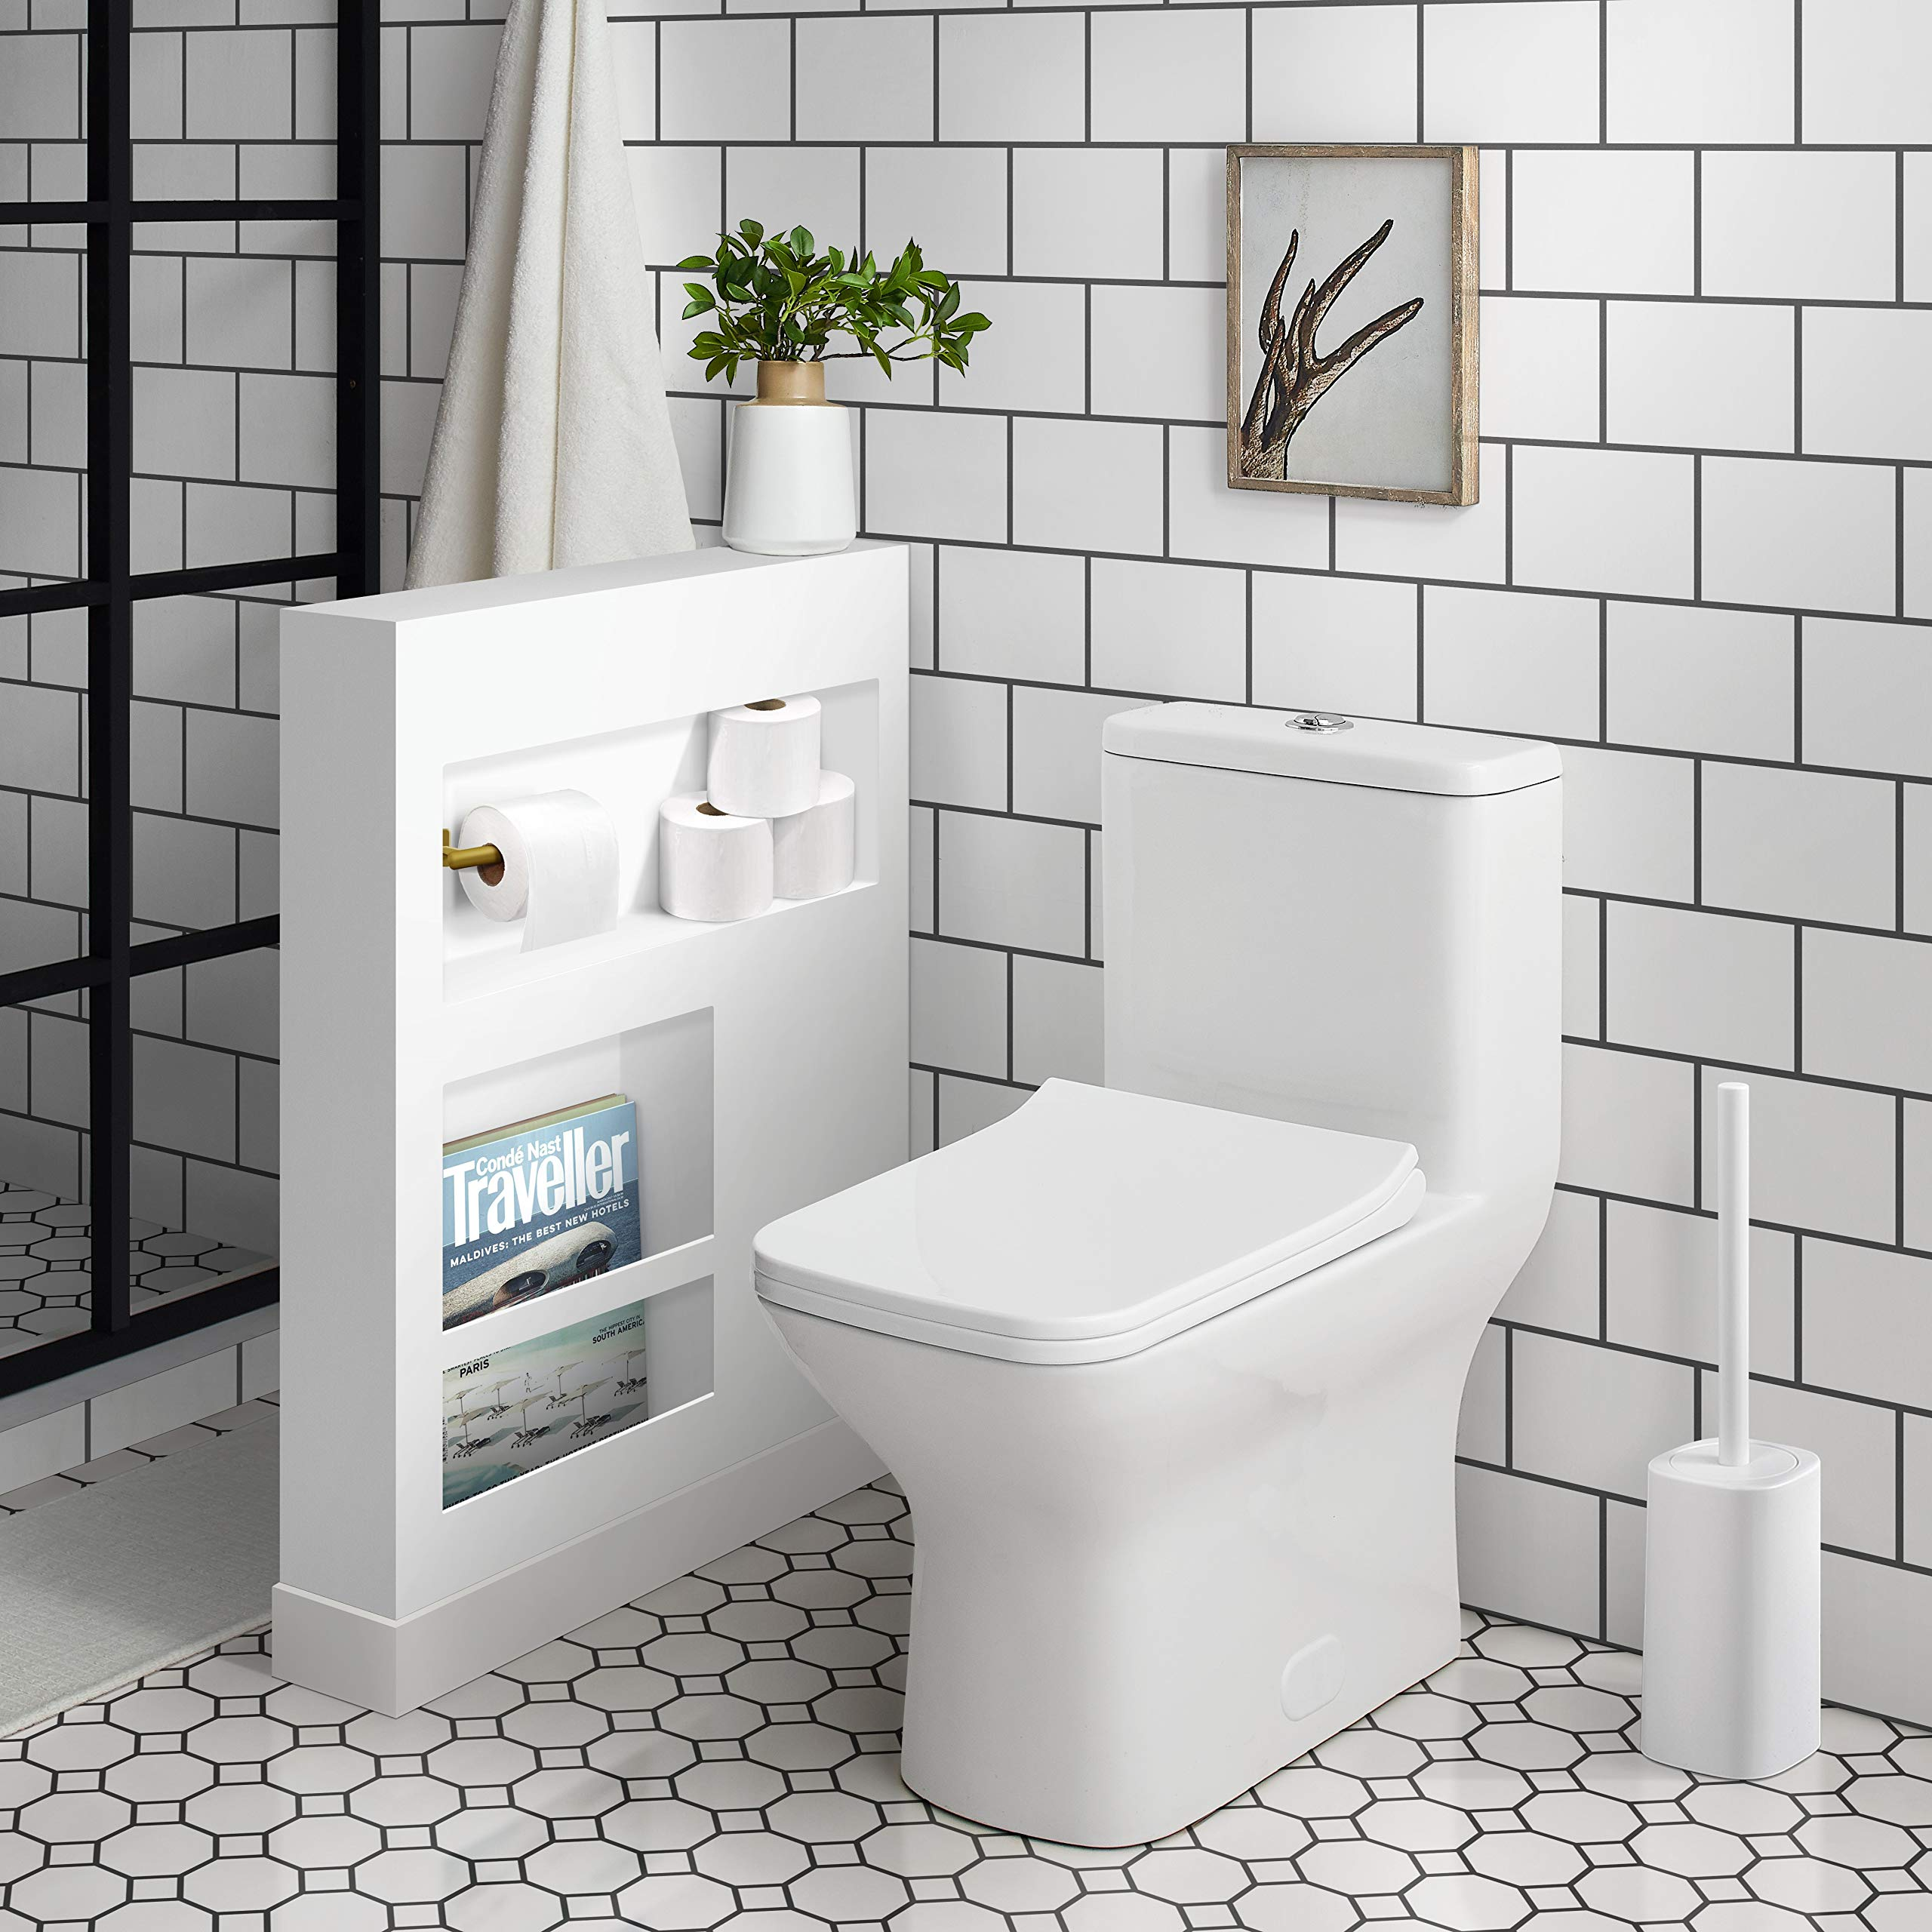 Swiss Madison SM-1T256 Carré One Piece Elongated Toilet Dual Flush 0.8/1.28 gpf by Swiss Madison